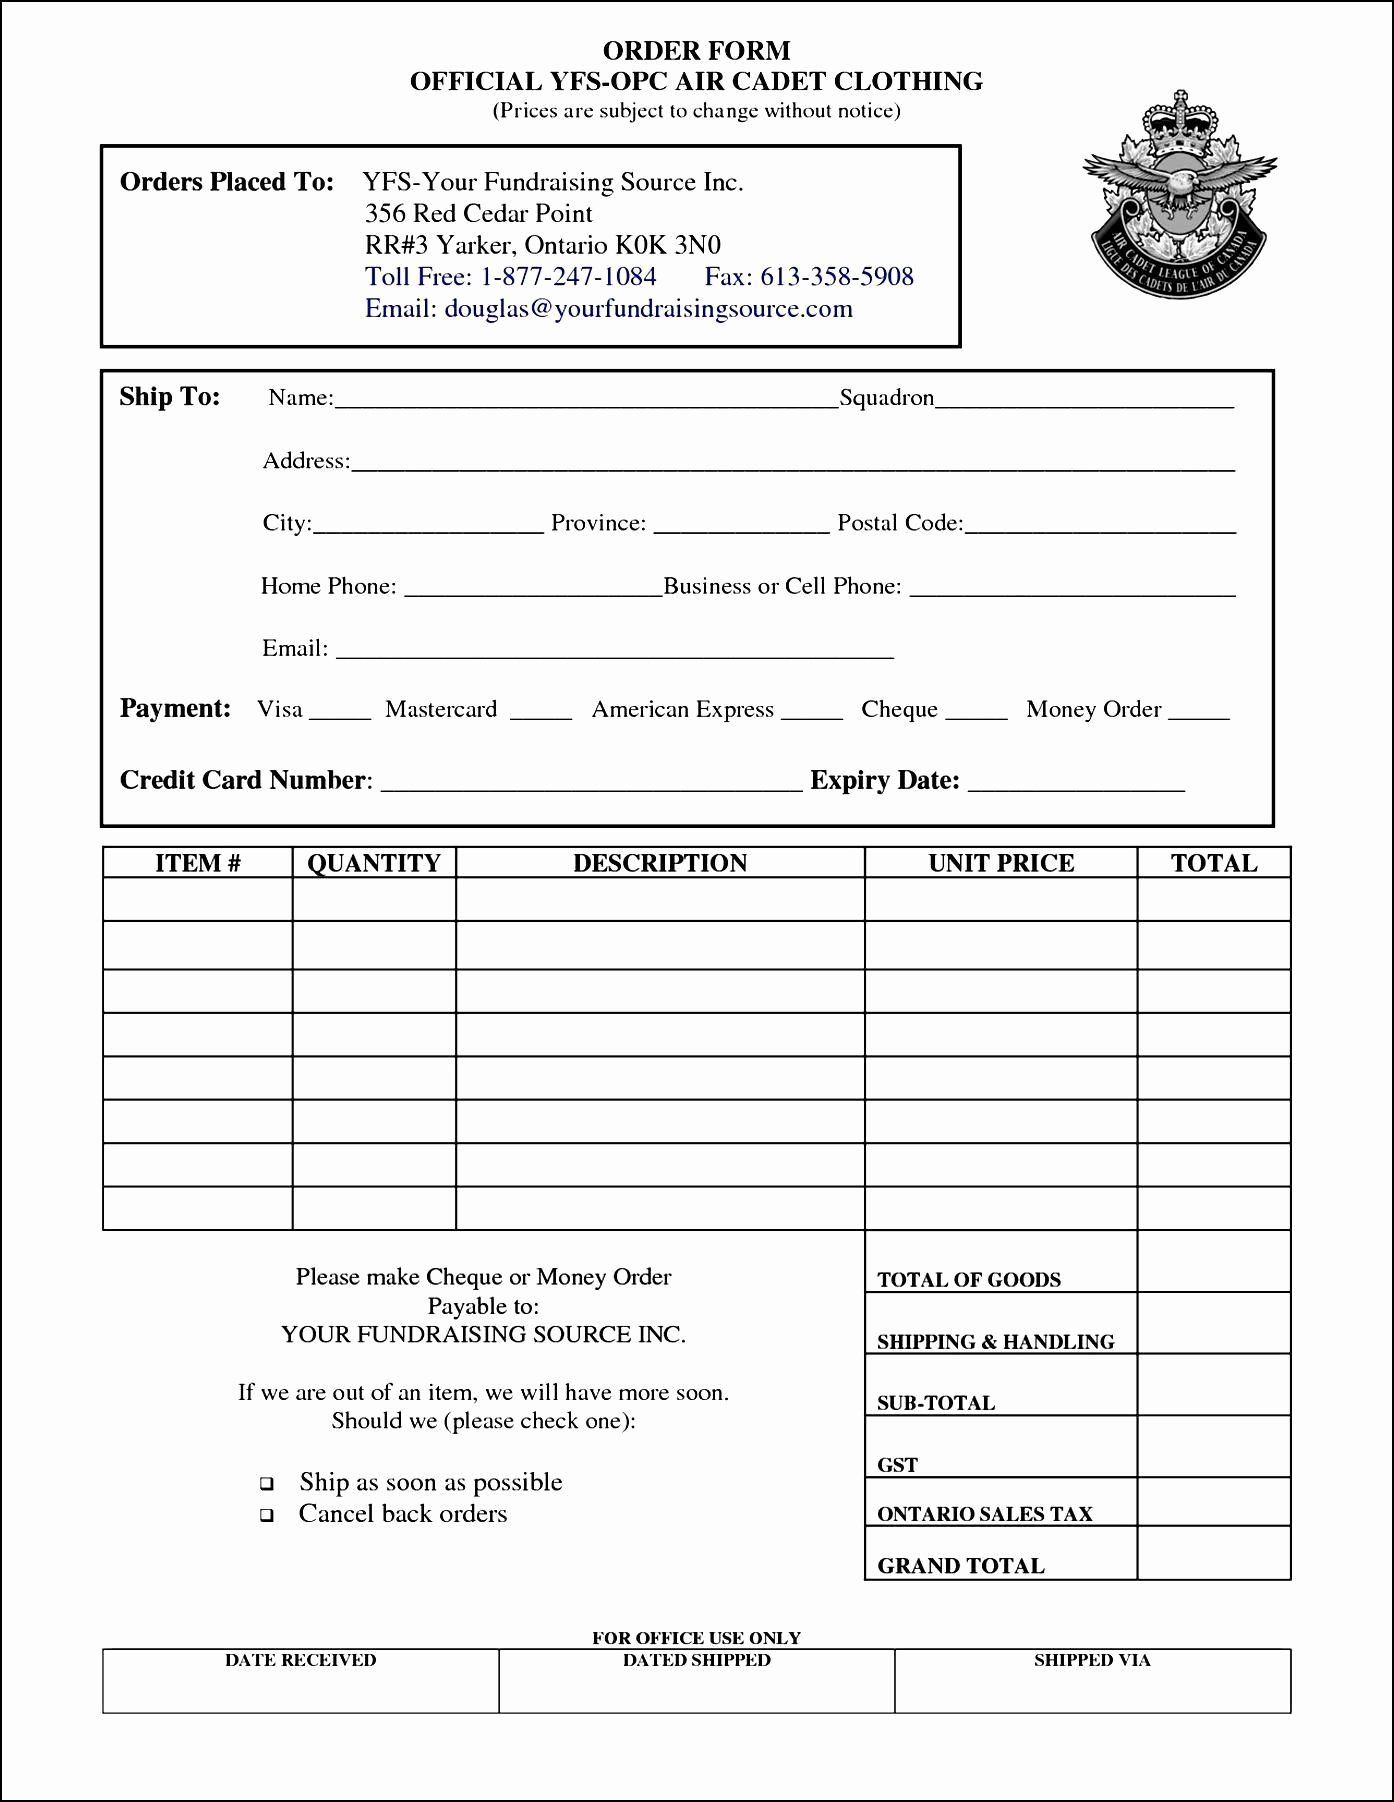 Clothing Order Form Template Free Beautiful Clothing Order Form Template Free Order Form Template Order Form Template Free Order Form